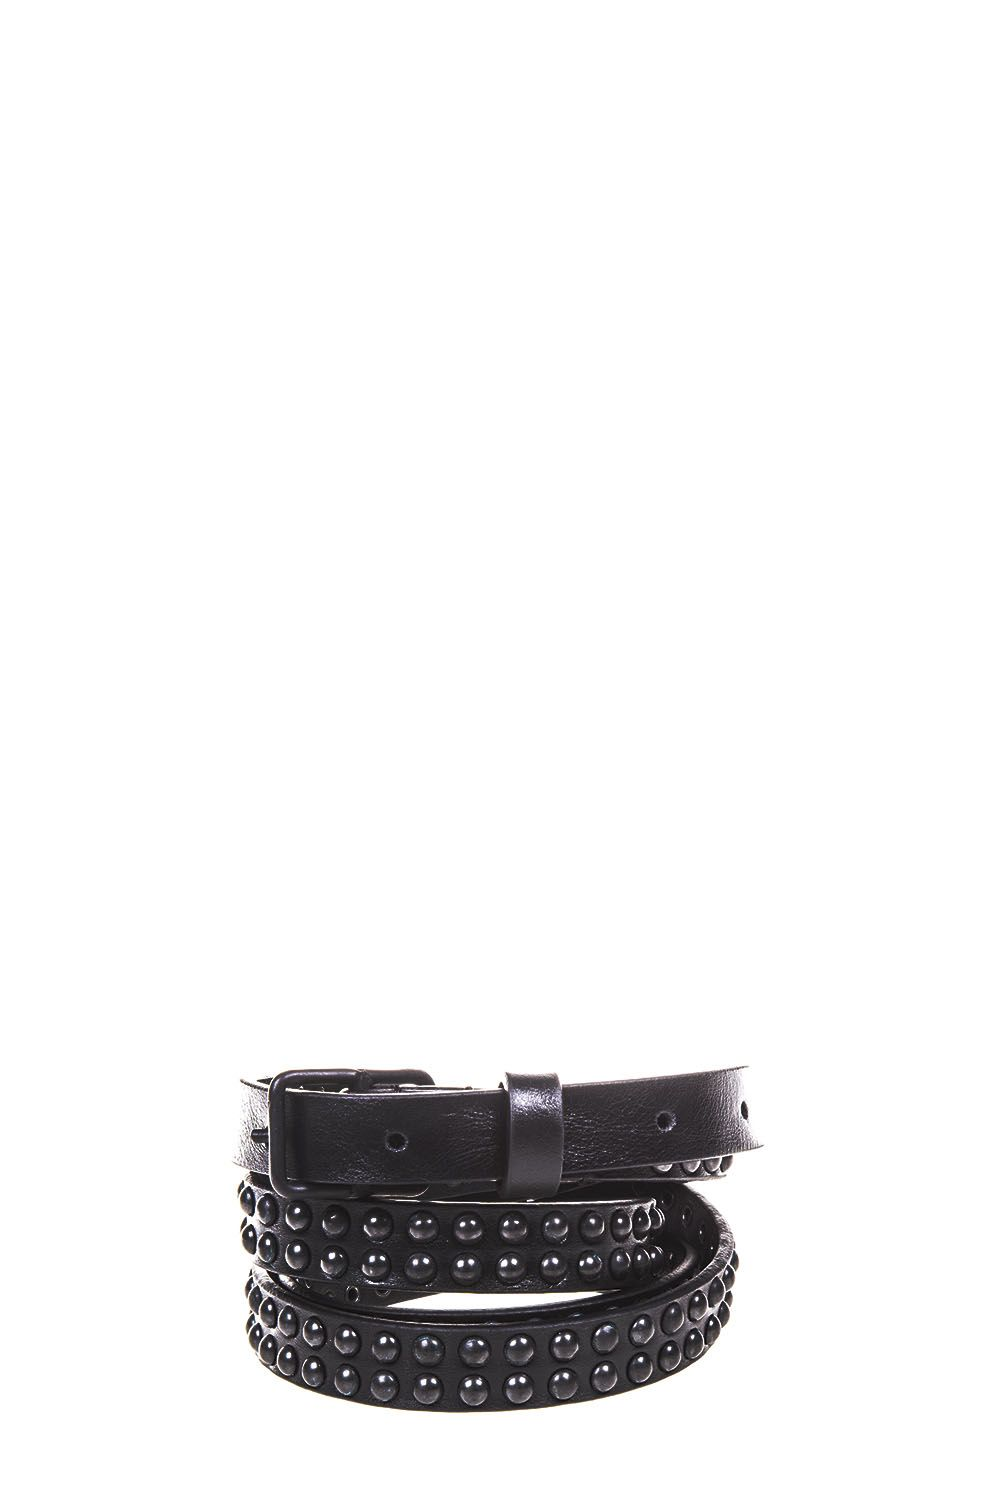 Dsquared2 Studded Leather Belt